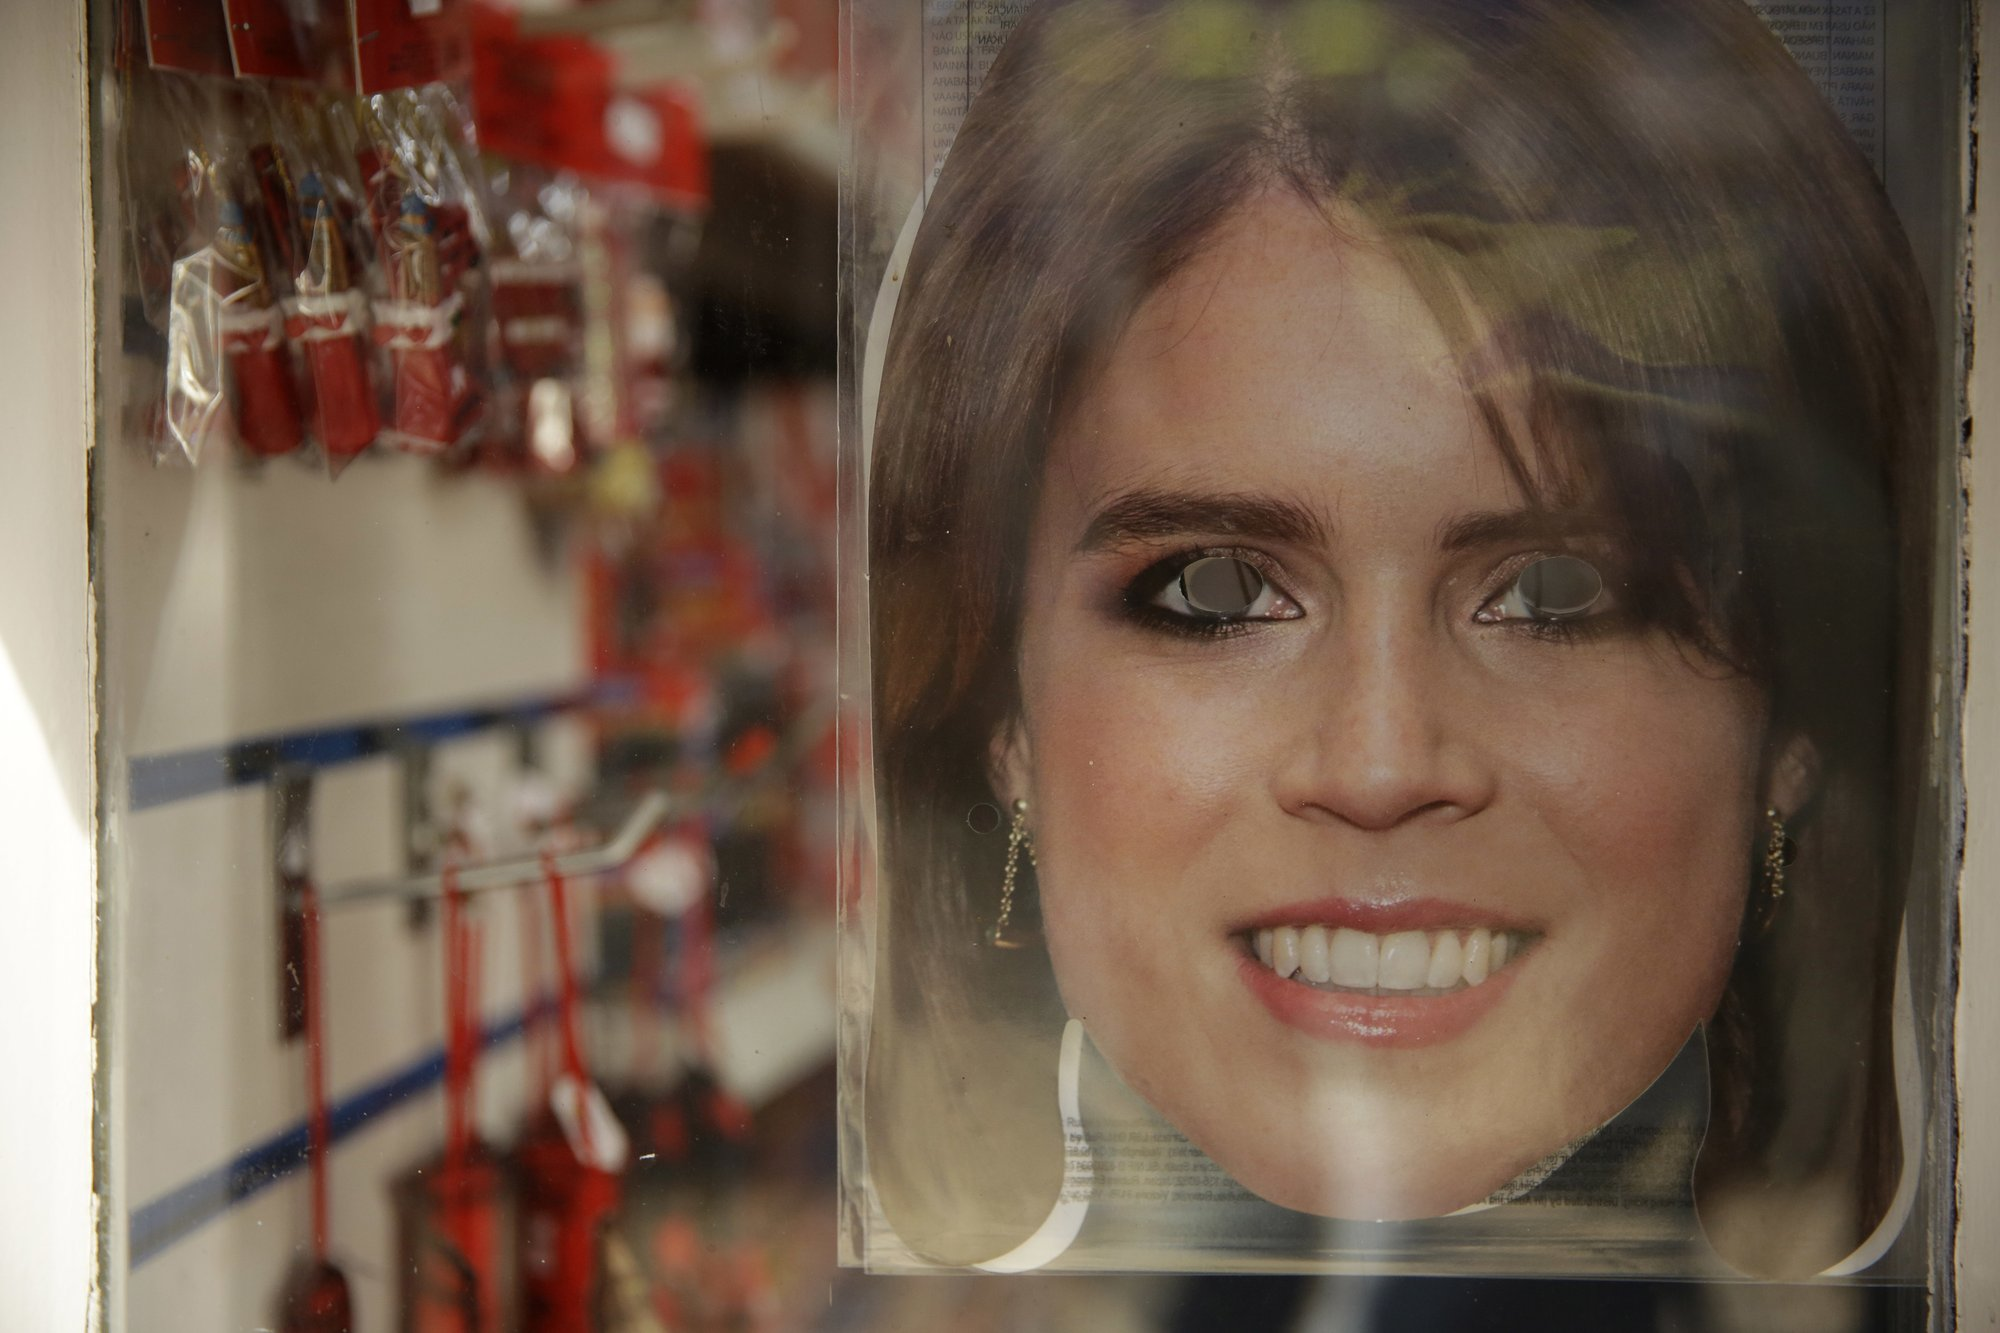 A Princess Eugenie mask is displayed for sale in the window of a souvenir shop ahead of the wedding of Britain's Princess Eugenie in Windsor, England, on Wednesday, Oct. 10, 2018. Photo: AP